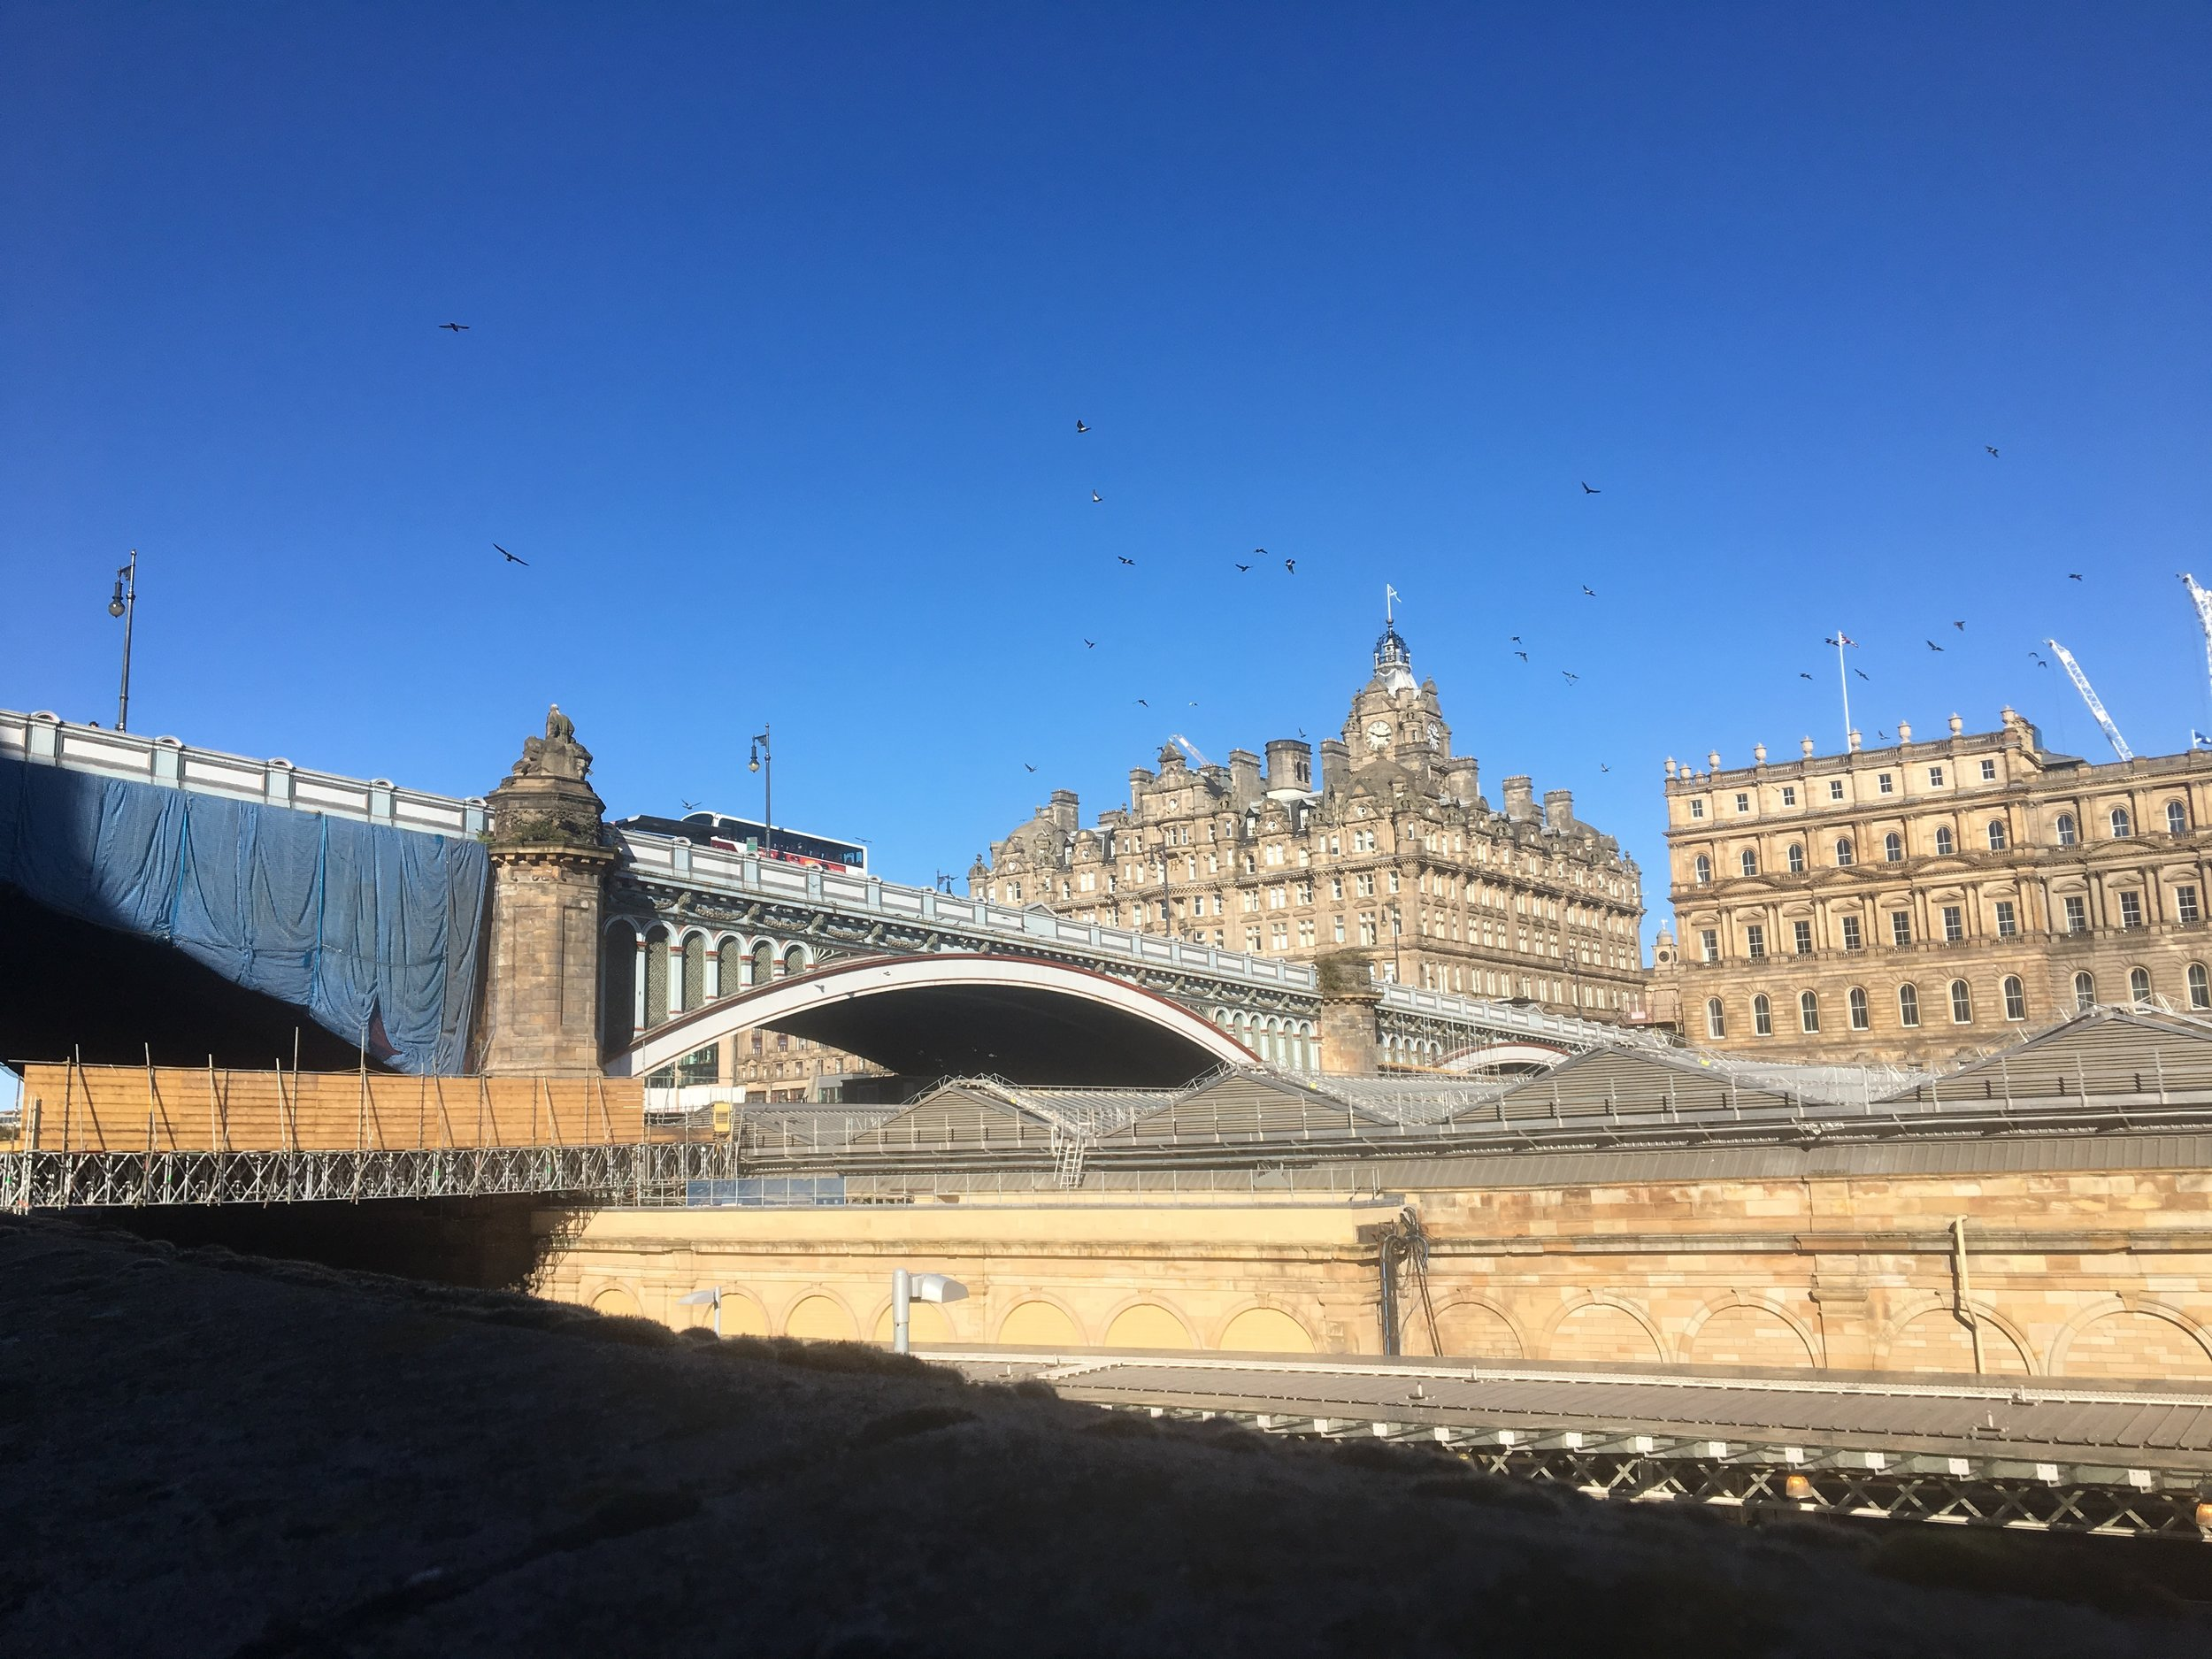 North Bridge connects Old Town and New Town in Edinburgh. The train station runs under the bridge. The buildings in the picture are on the New Town side.